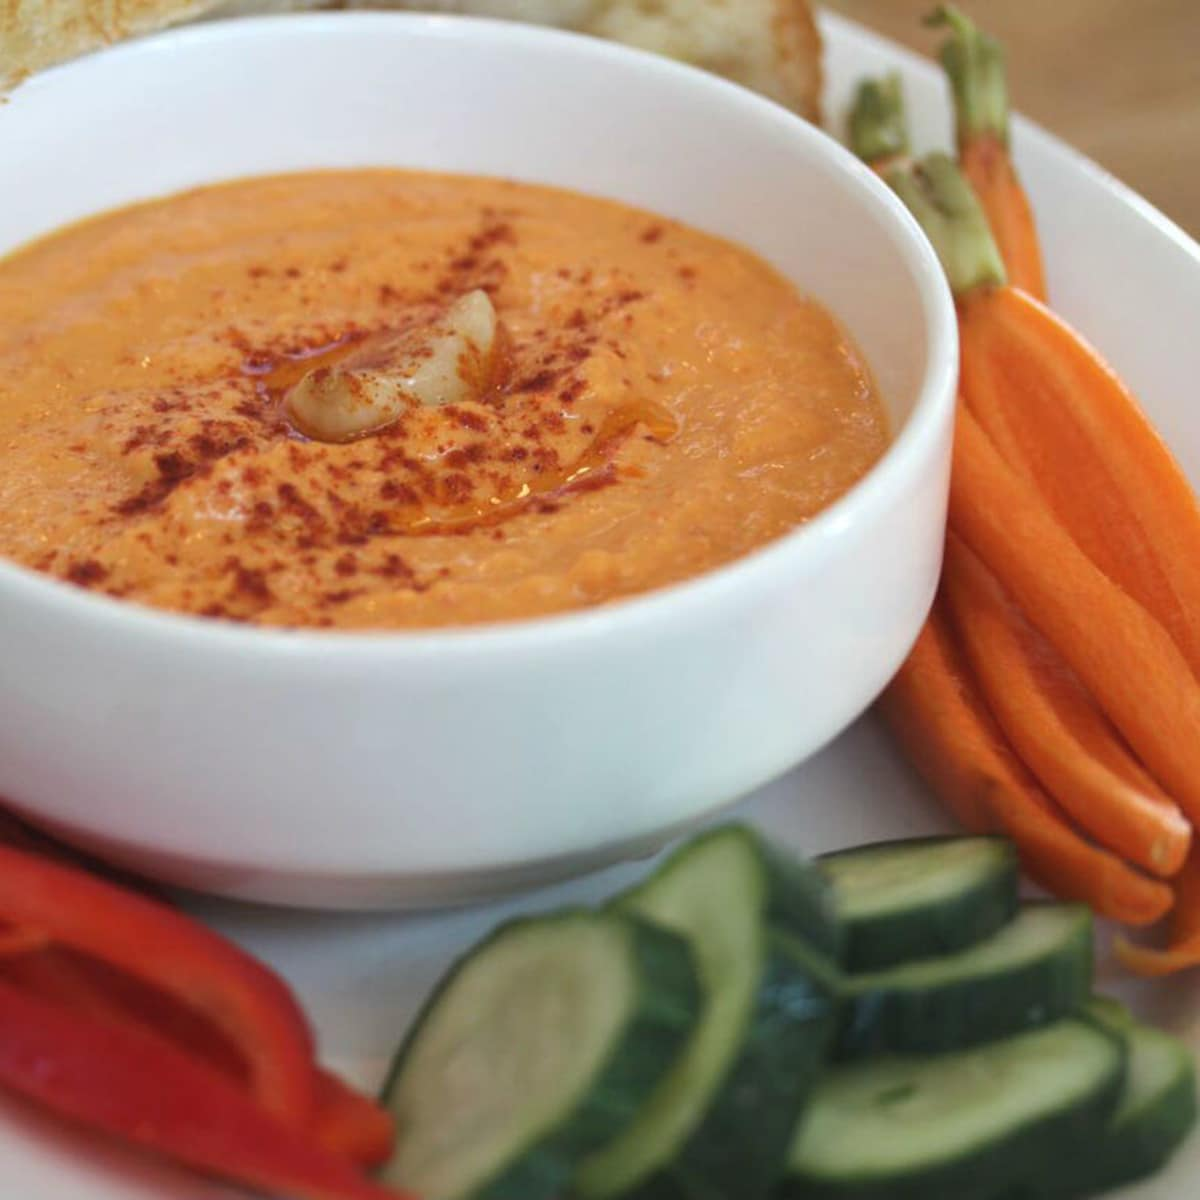 Quill Lounge, roasted red pepper hummus